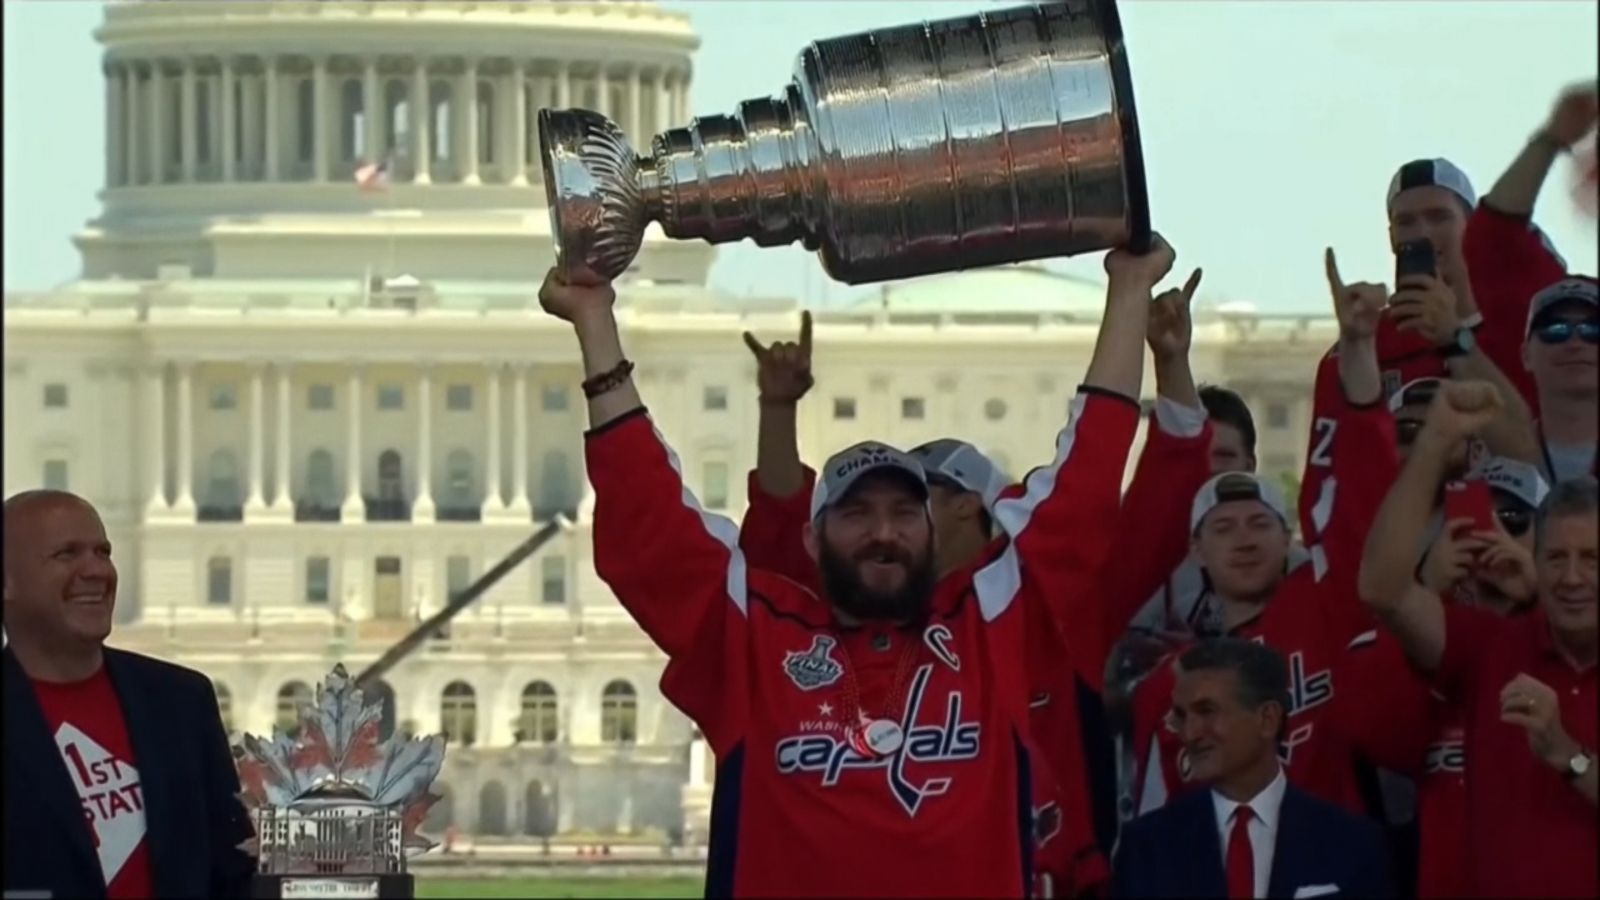 bab3f2584cf Thousands of fans celebrate the Washington Capitals  1st Stanley Cup win -  ABC News